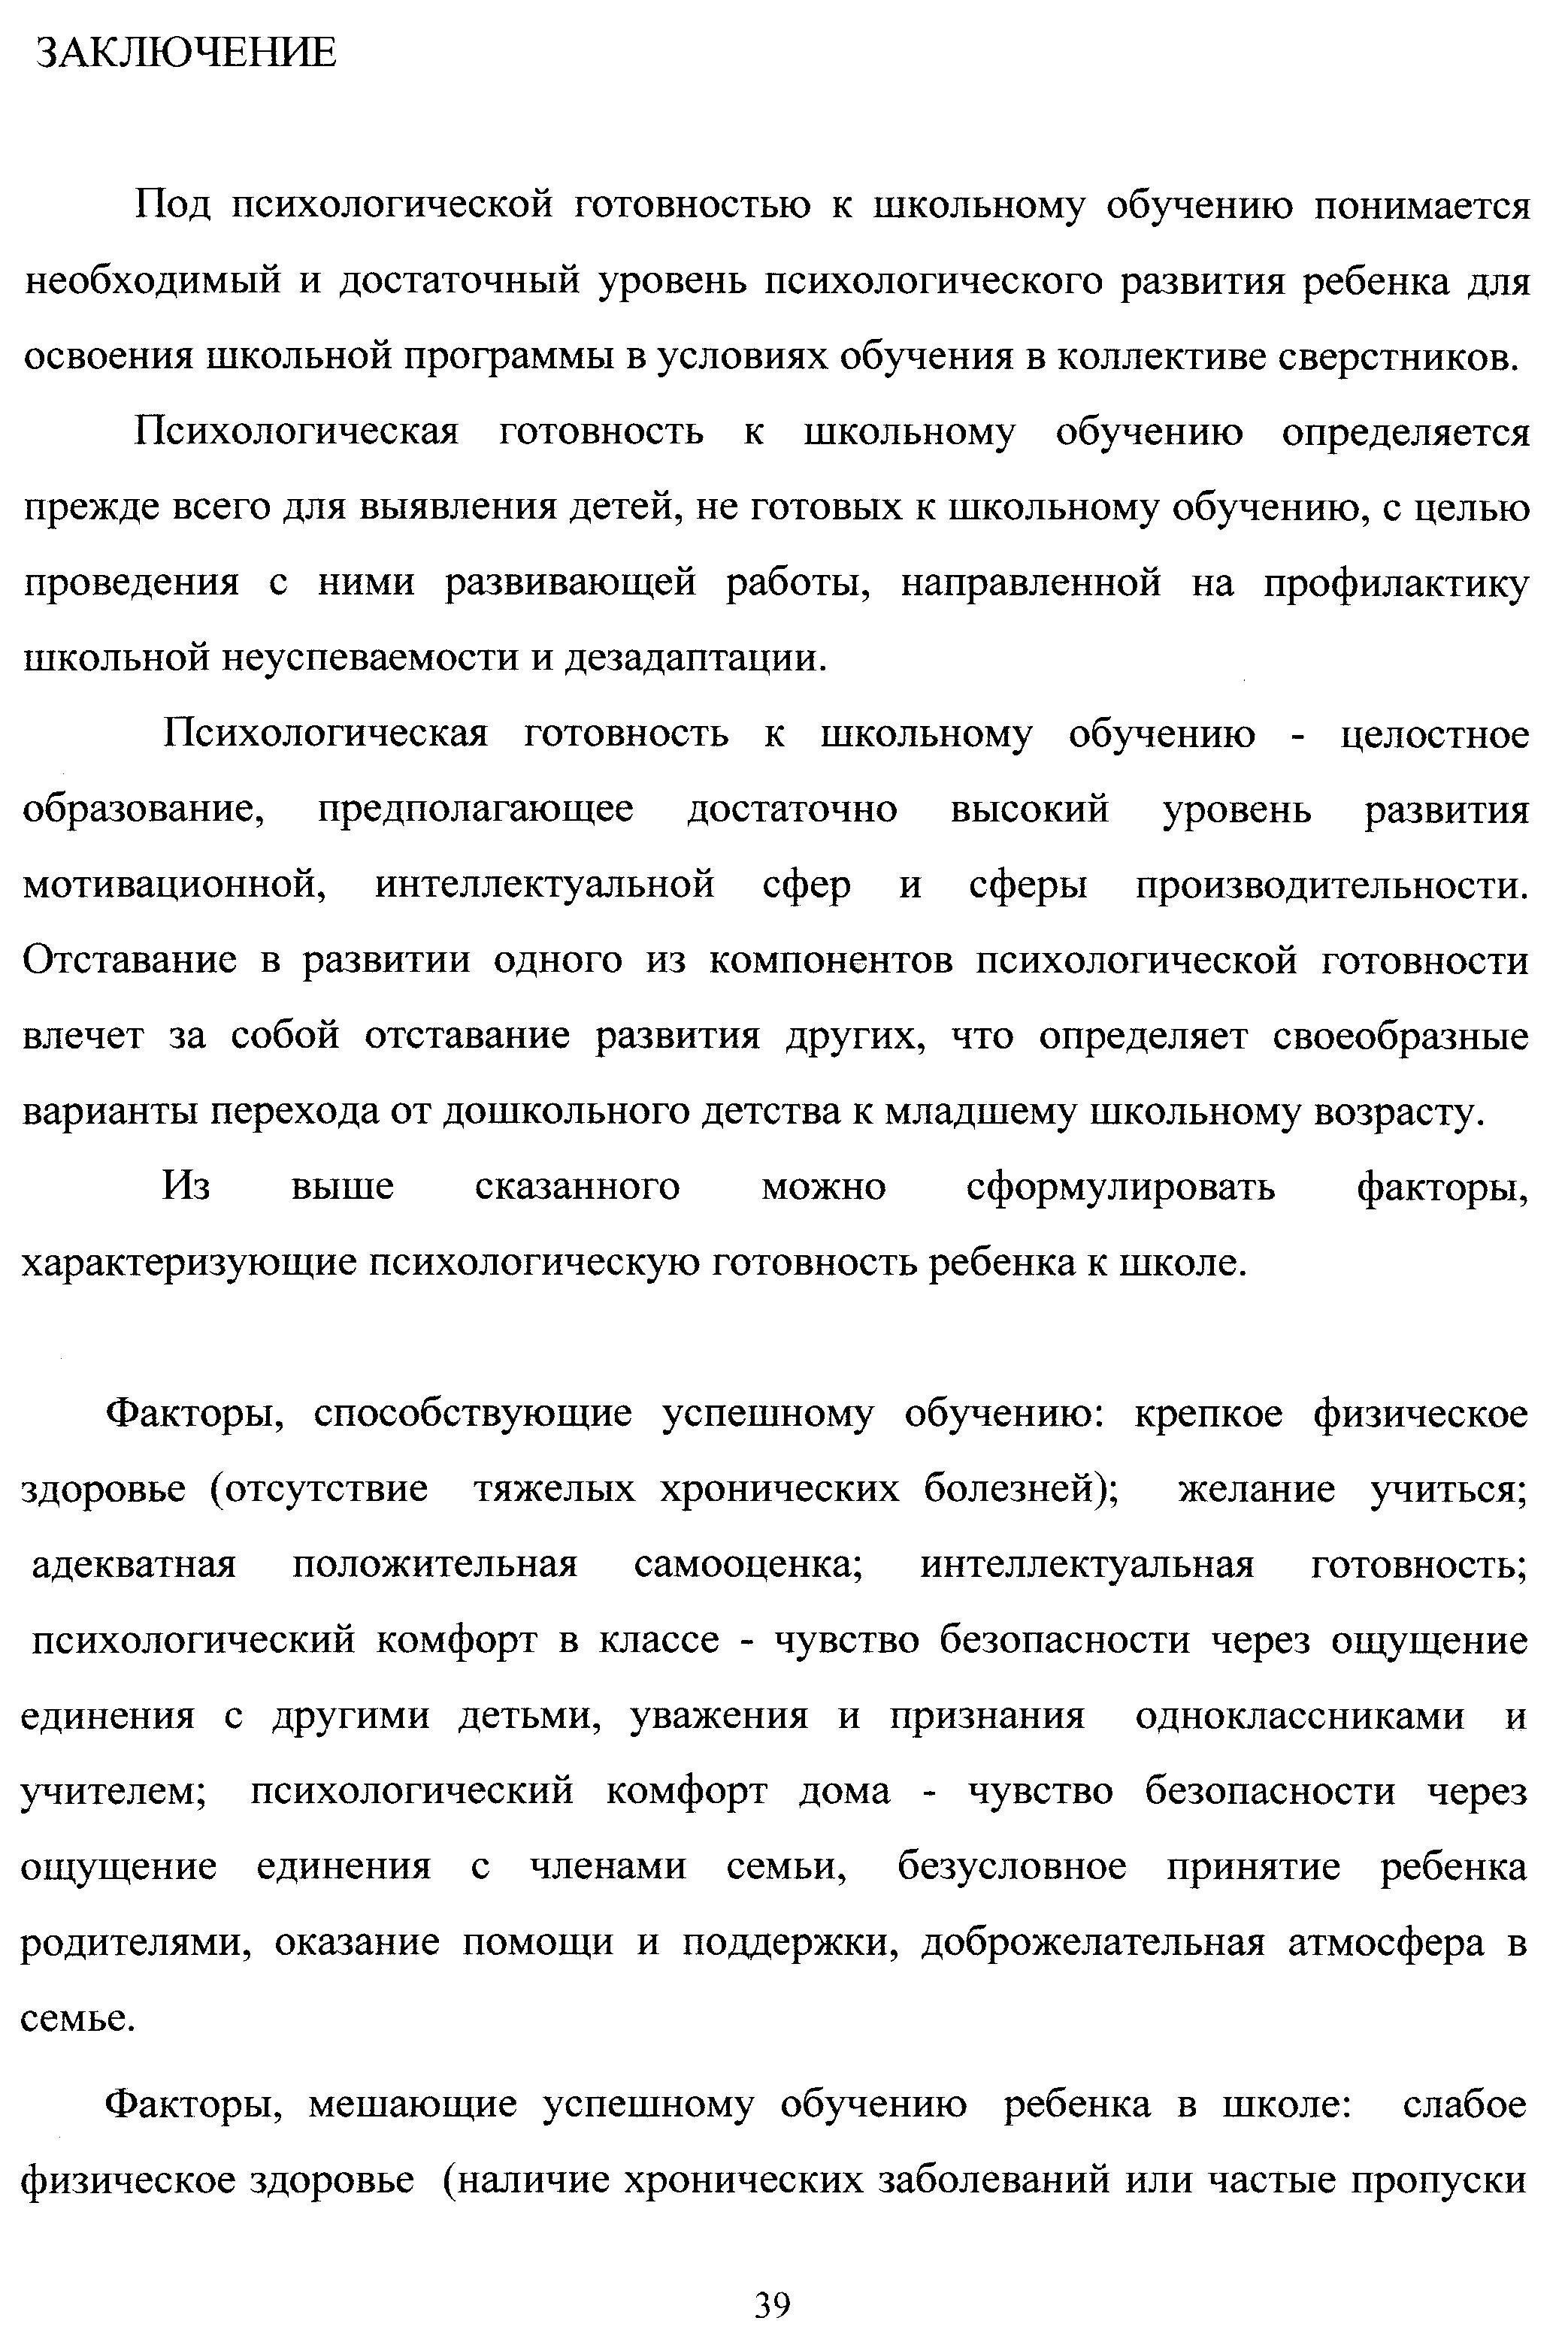 C:\Users\ЛАРИСА\Documents\Scanned Documents\Рисунок (143).jpg